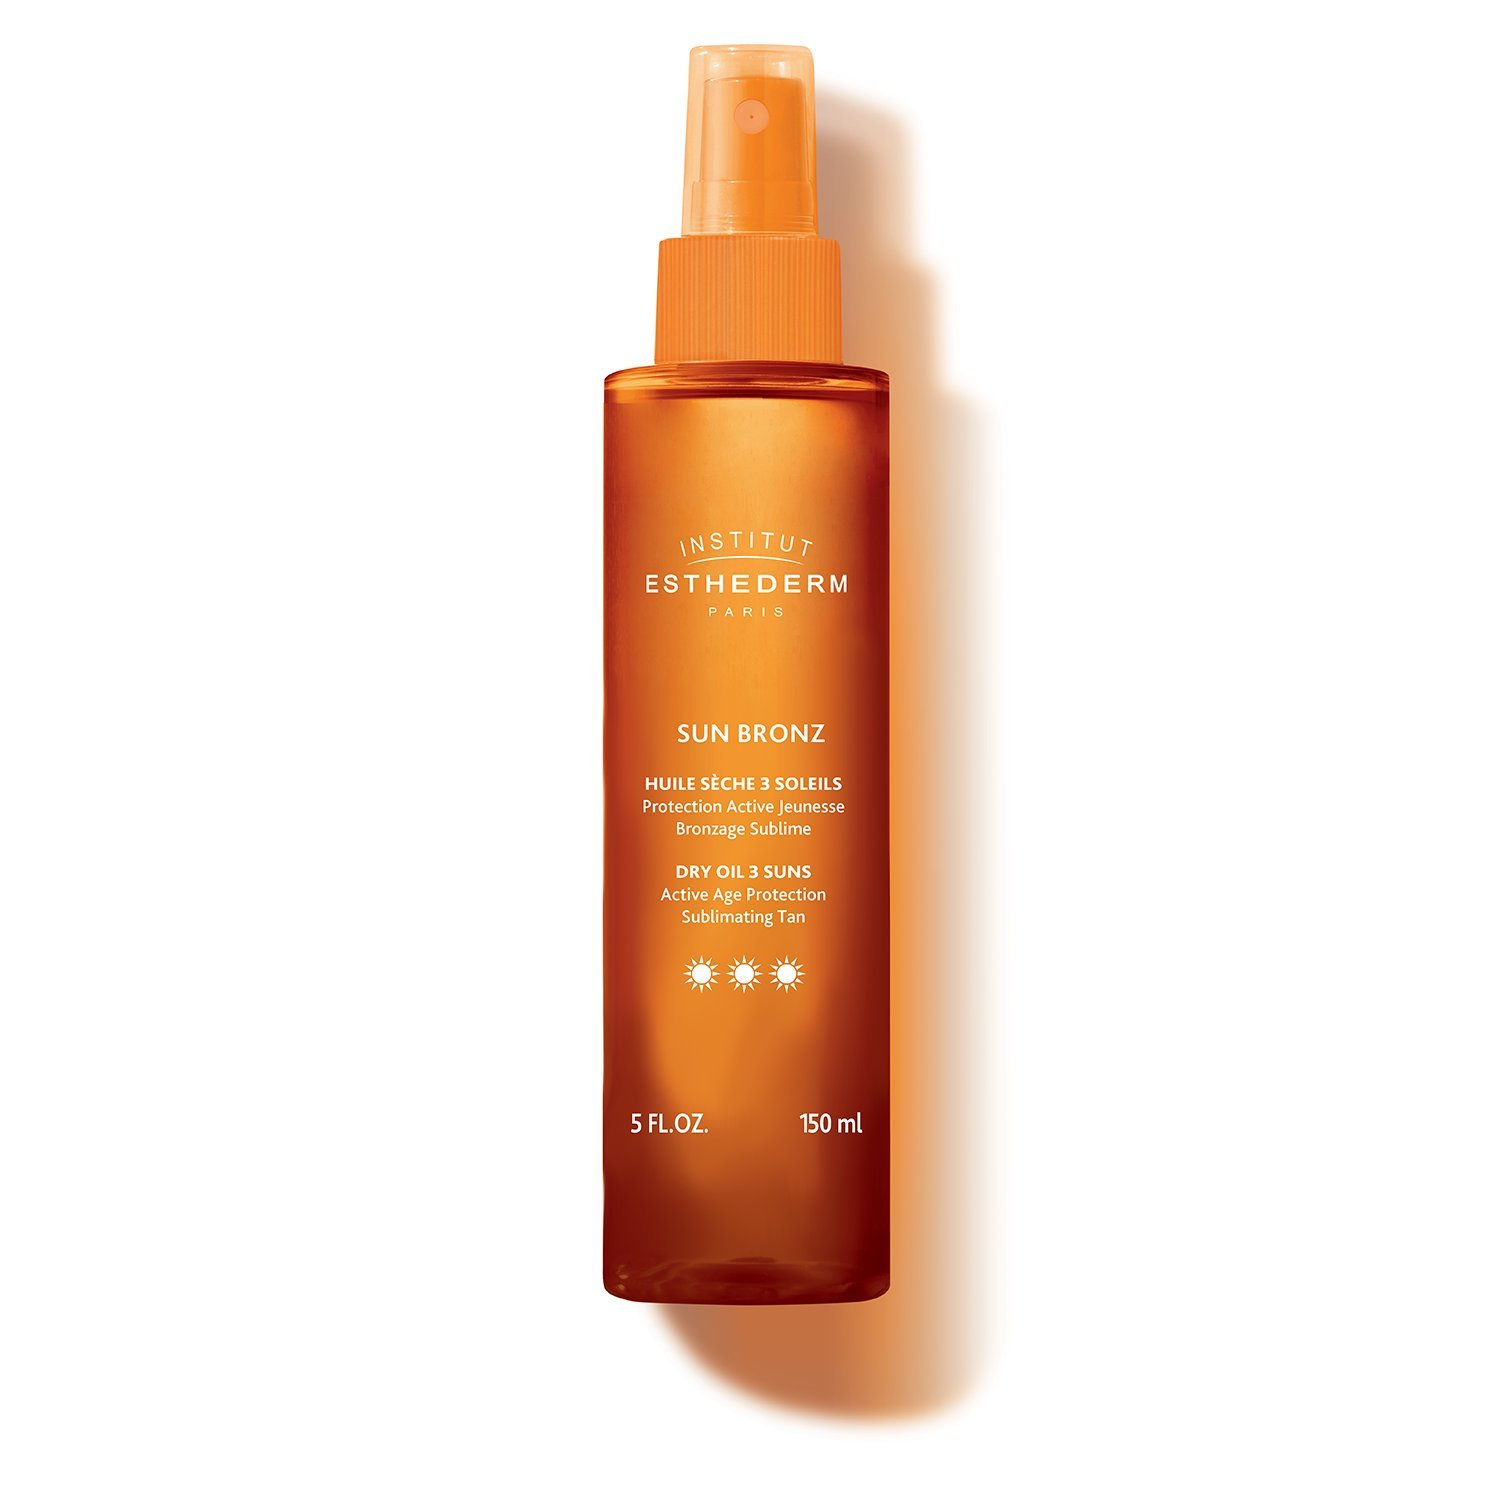 Institut Esthederm Sun Bronz 3 Suns, dry body oil with suncare protection for a faster and intense tan, normal skin - 4.23oz by Institut Esthederm (Image #1)